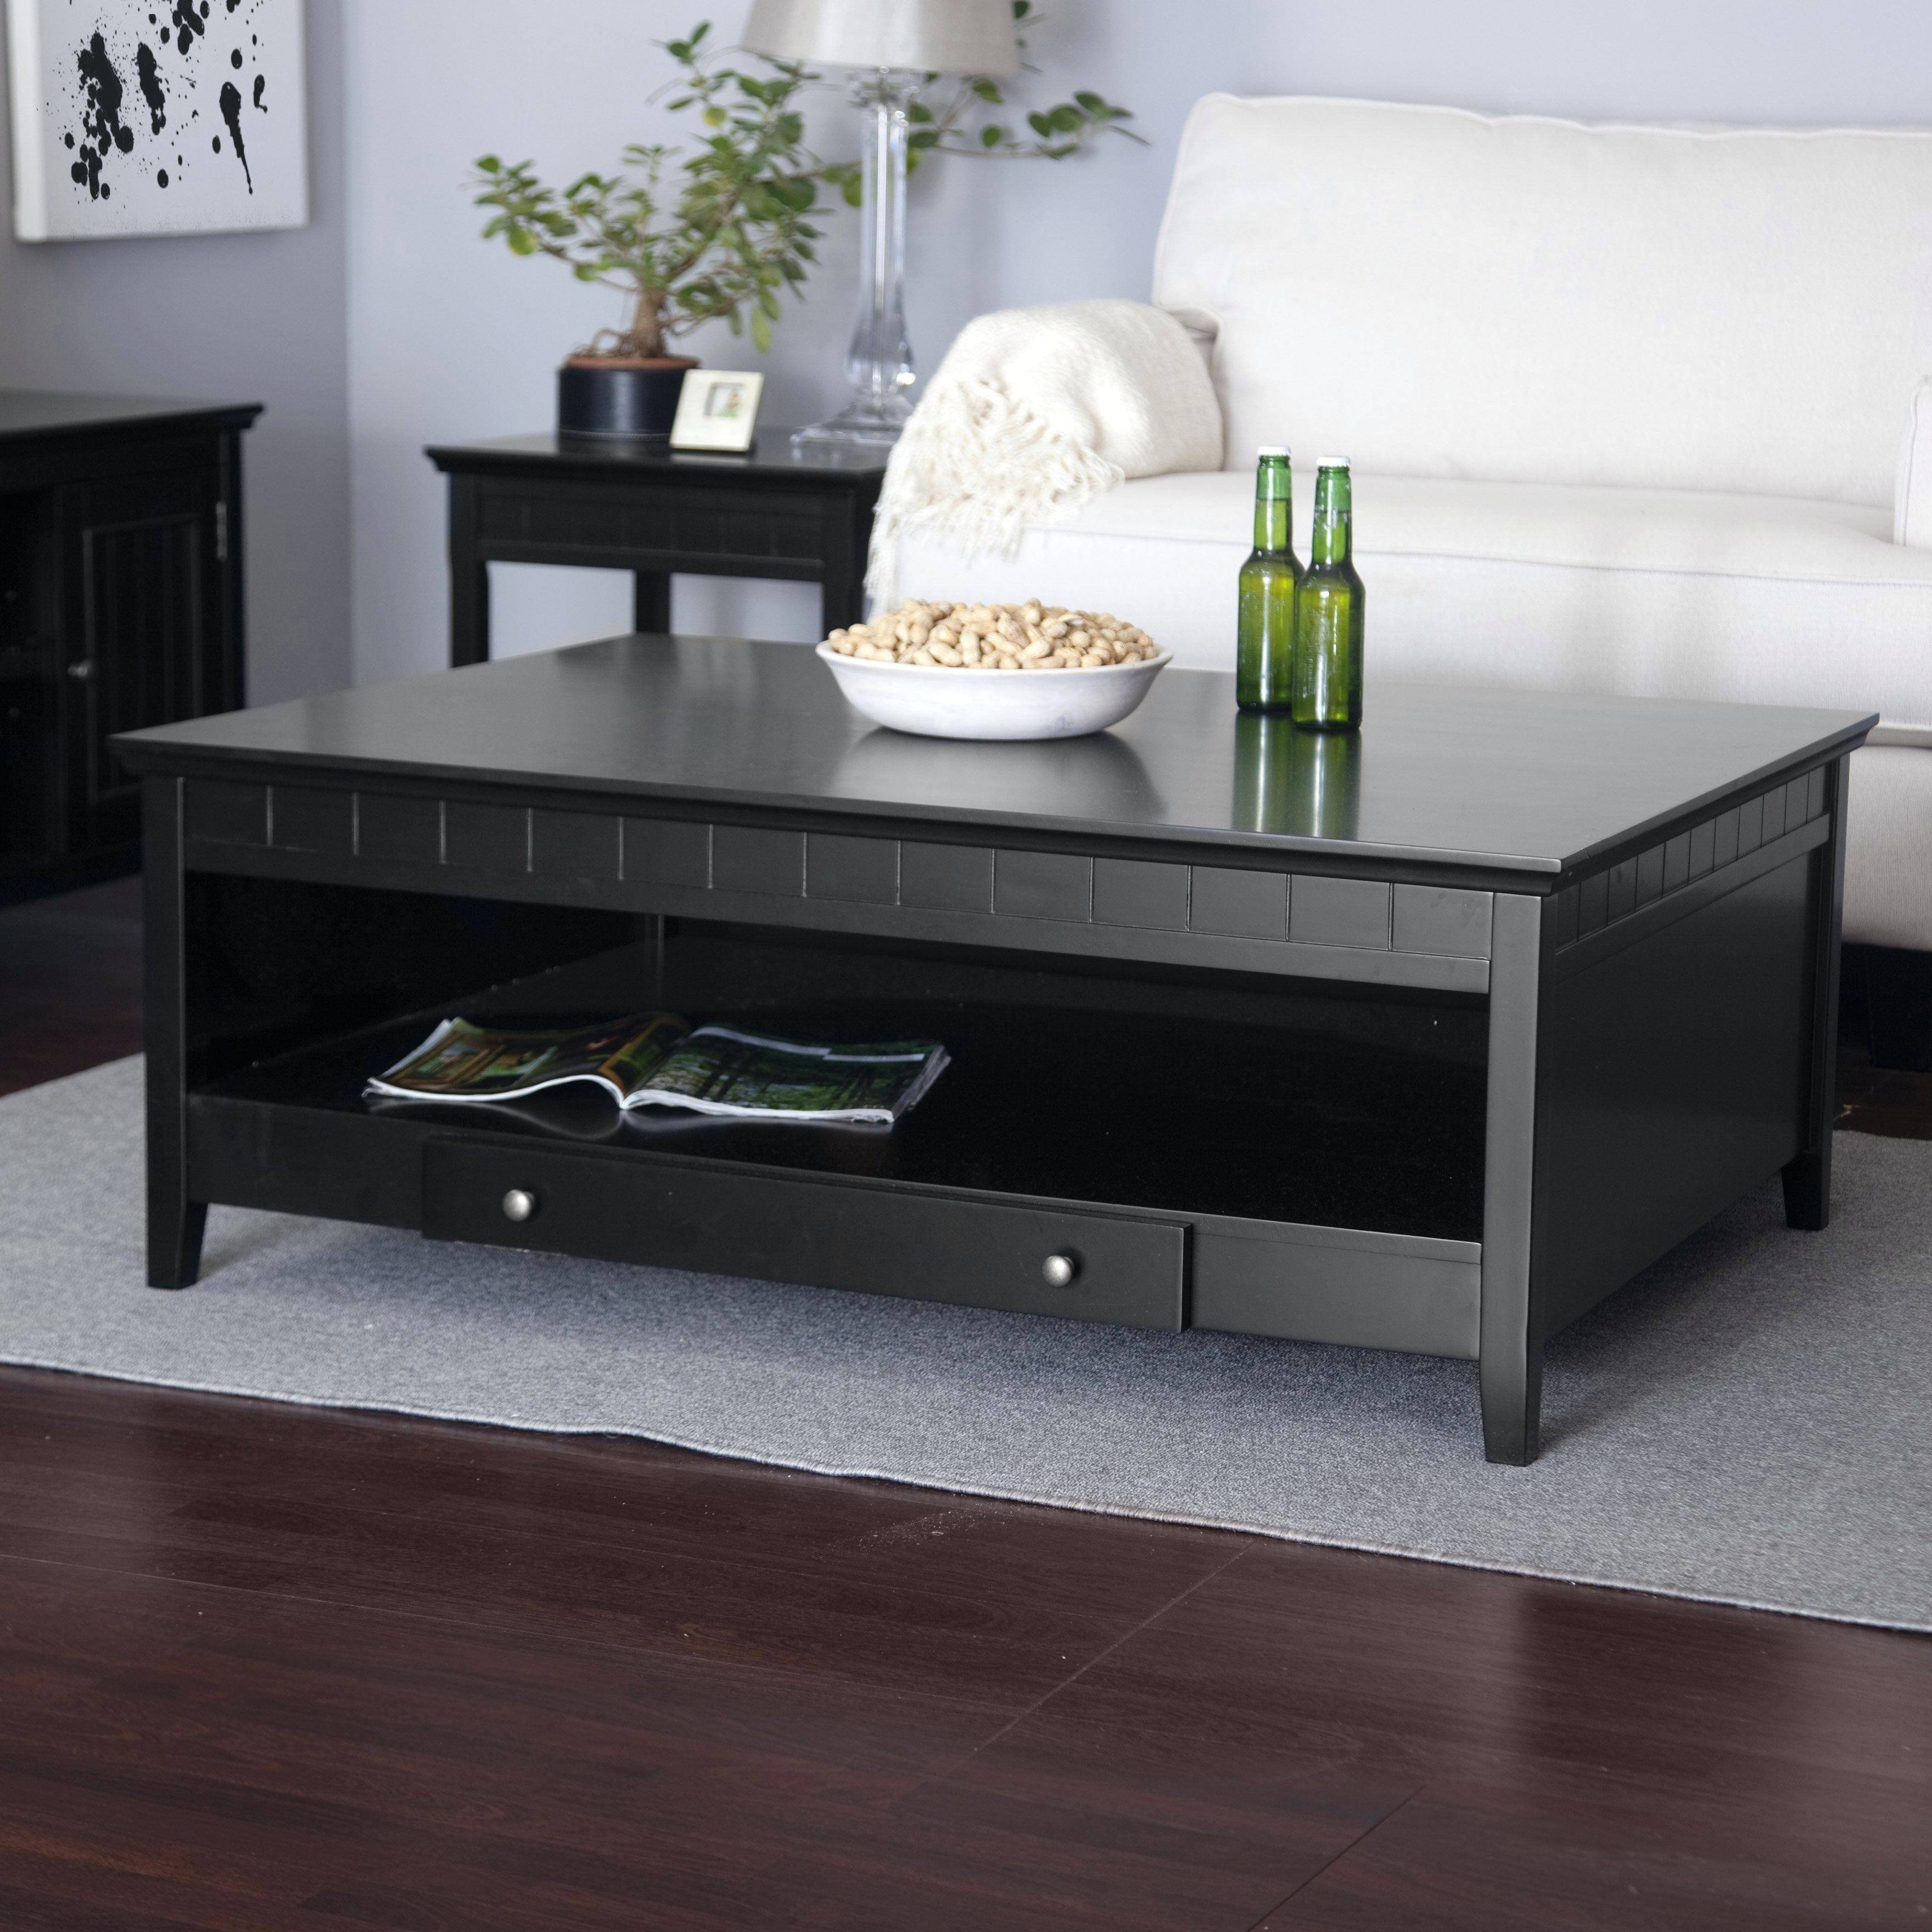 Coffee Table Square Coffee Table With Storage Drawers Drawer And inside Square Storage Coffee Table (Image 3 of 15)